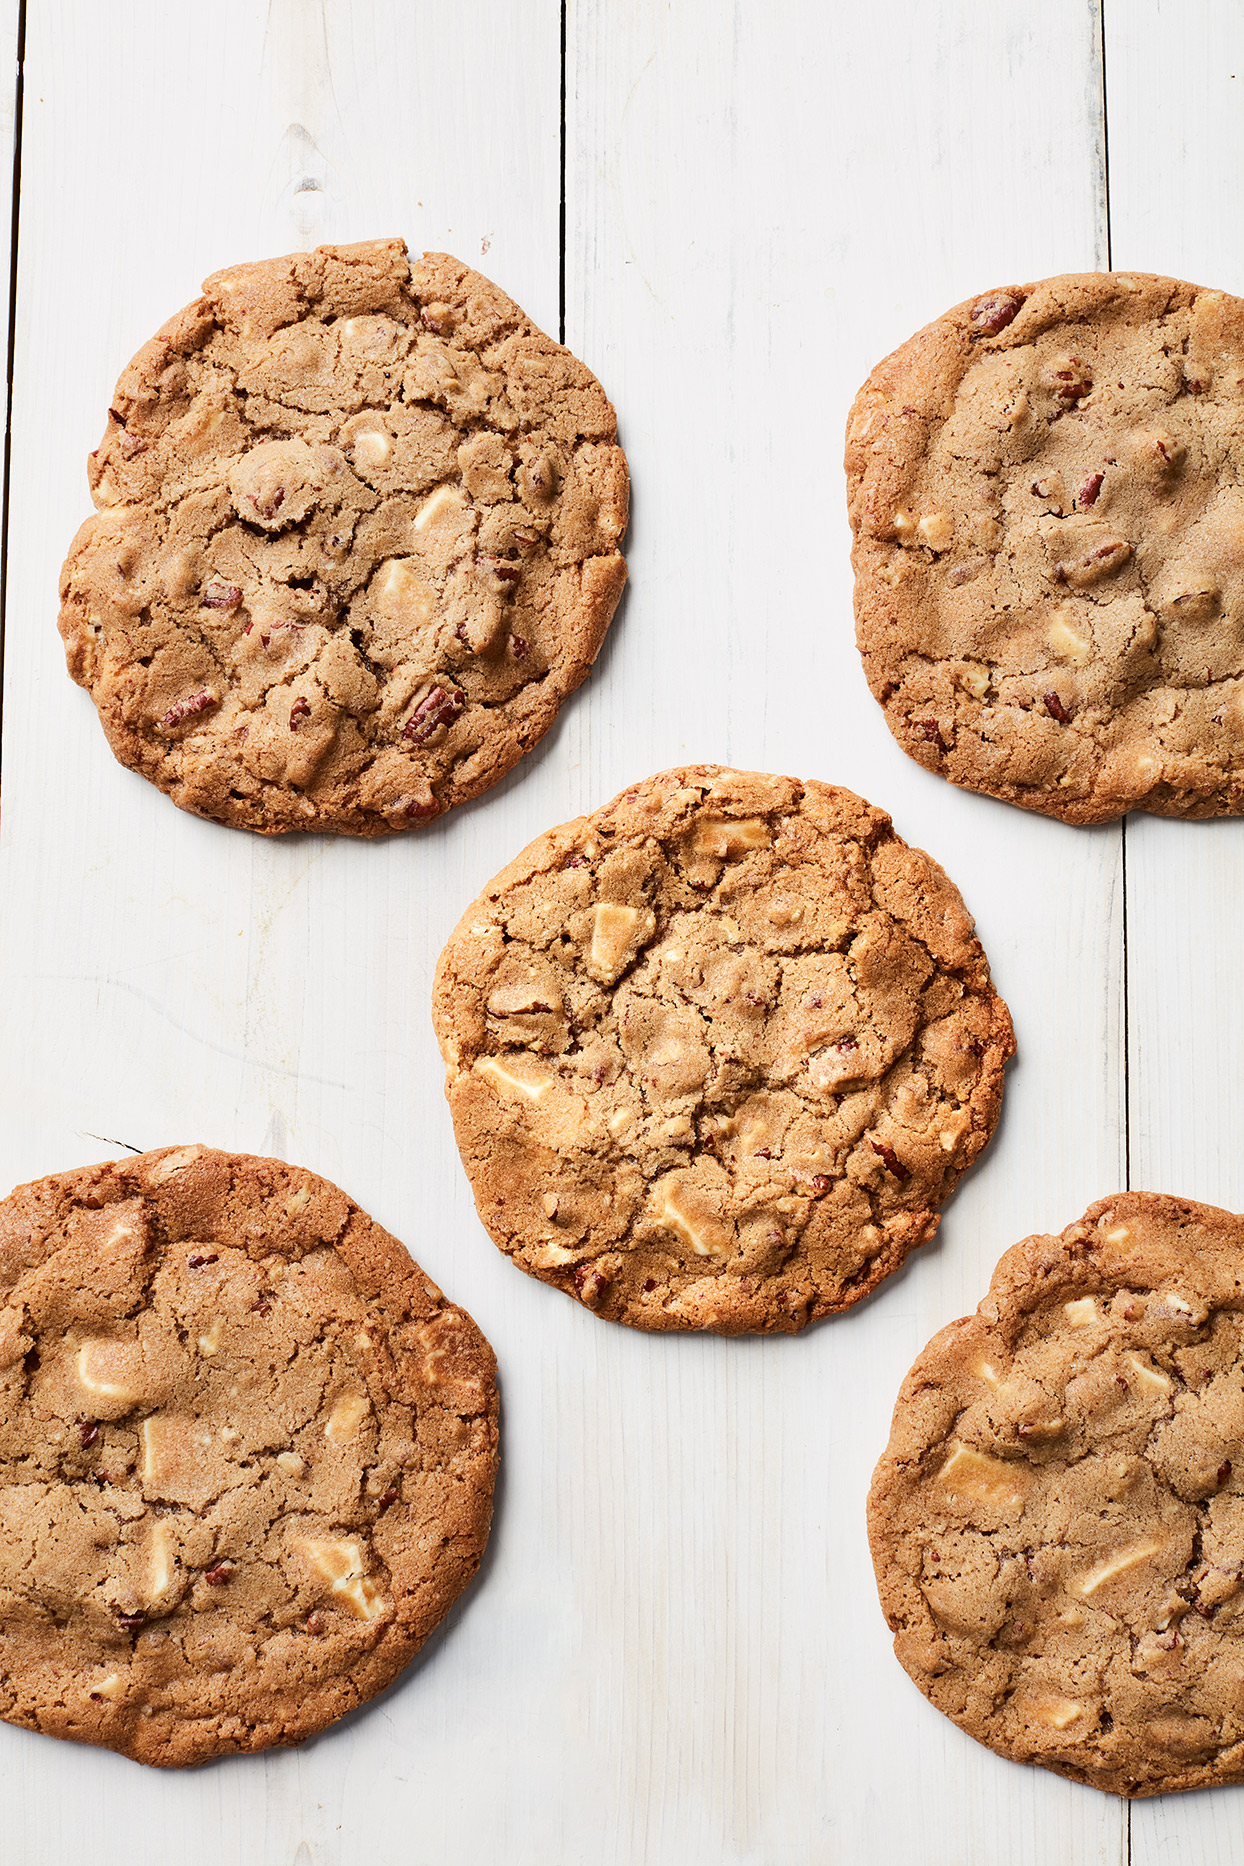 giant white-chocolate-pecan cookies against a white background